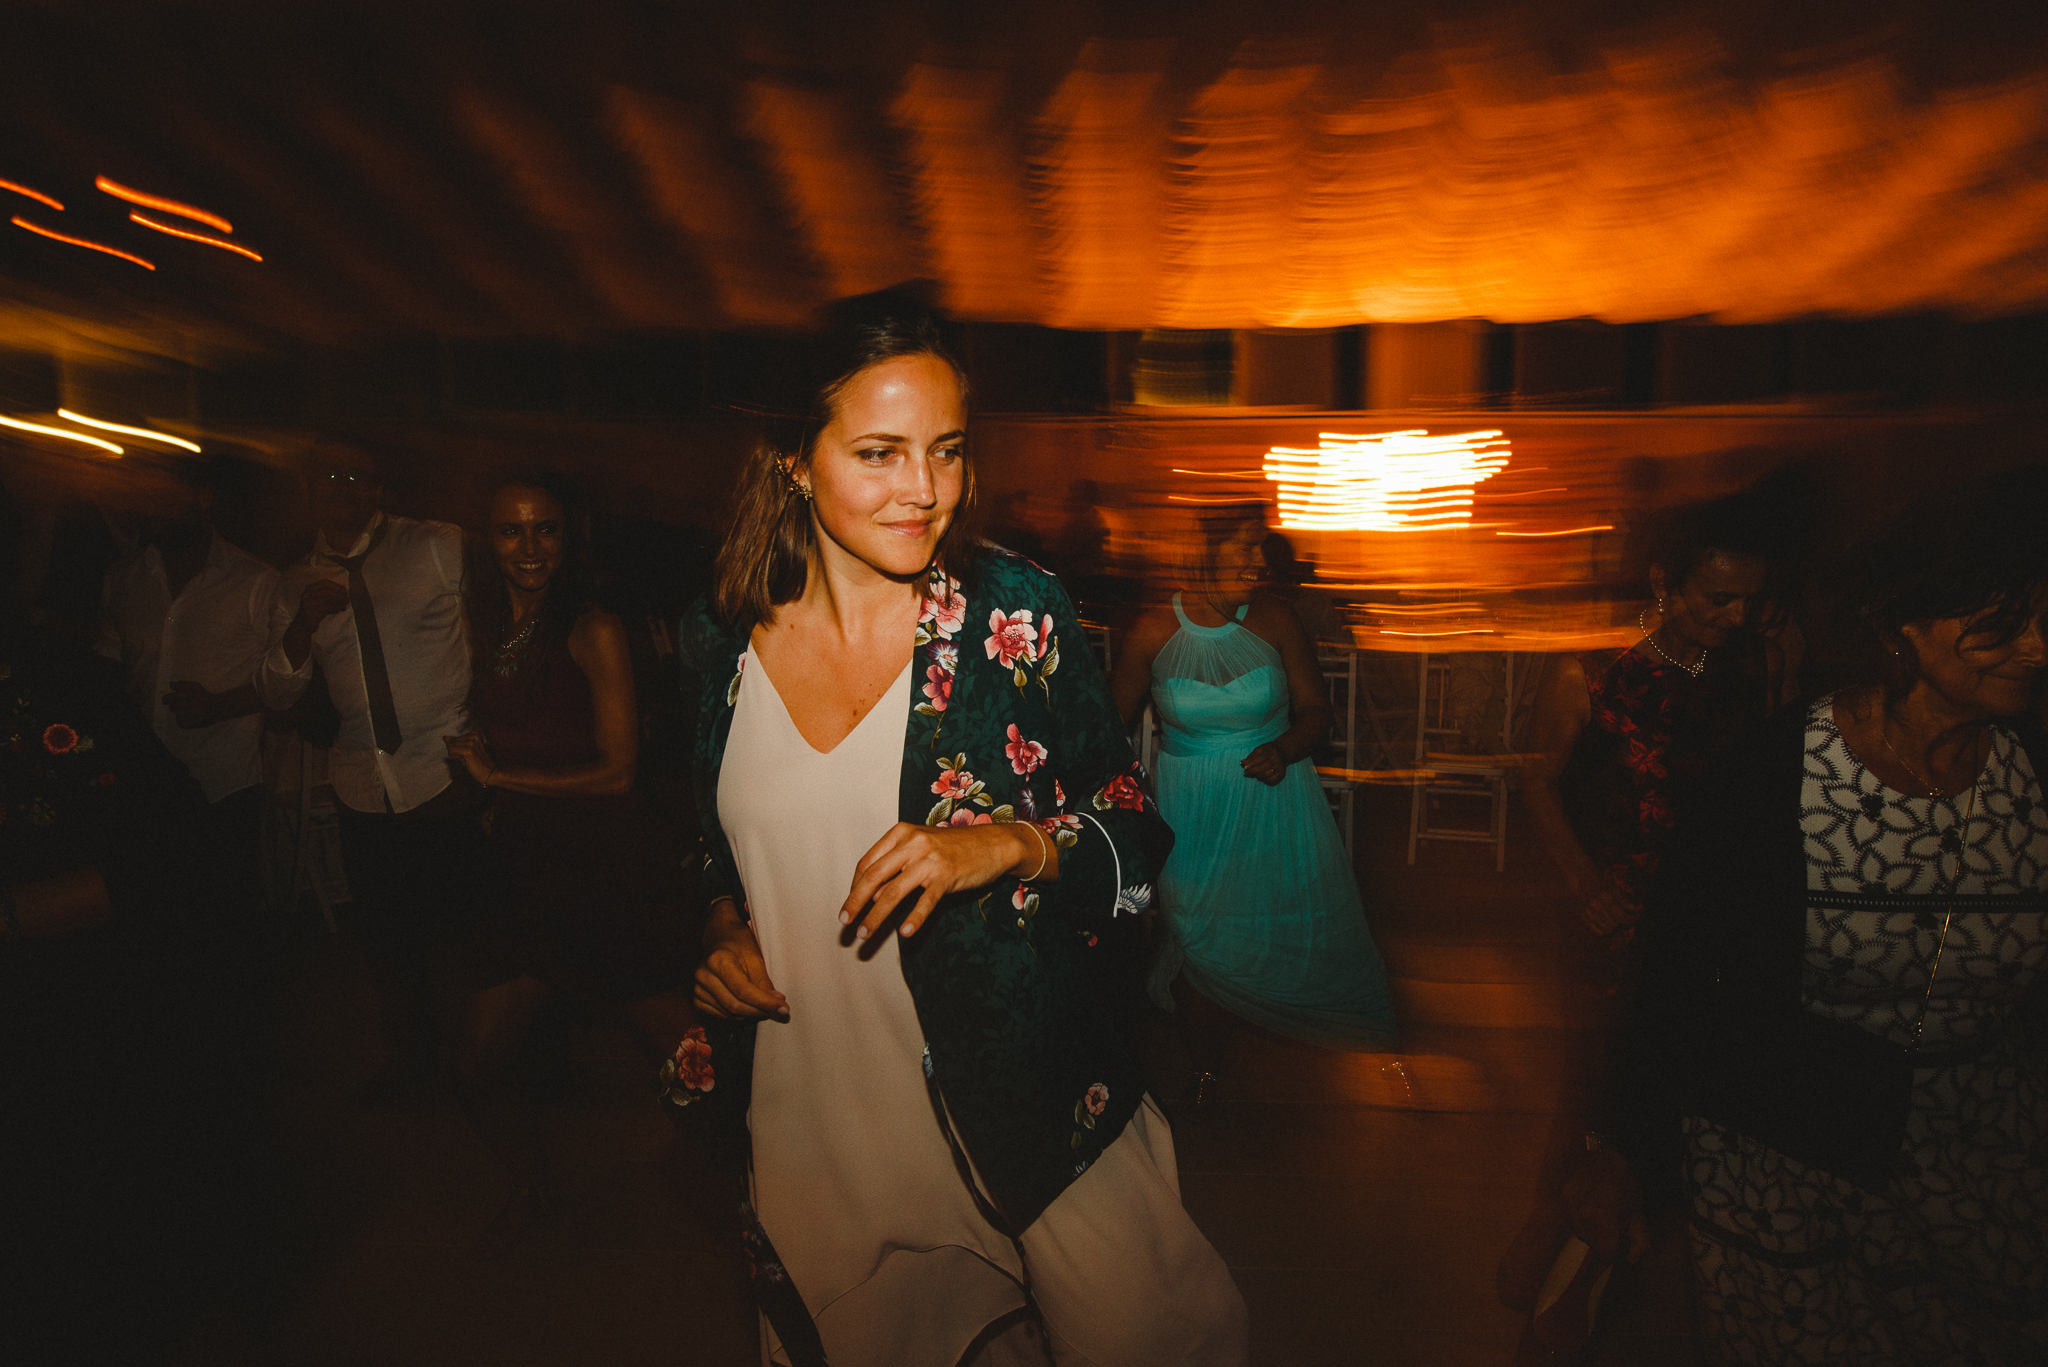 Wedding guest dancing on the dance floor